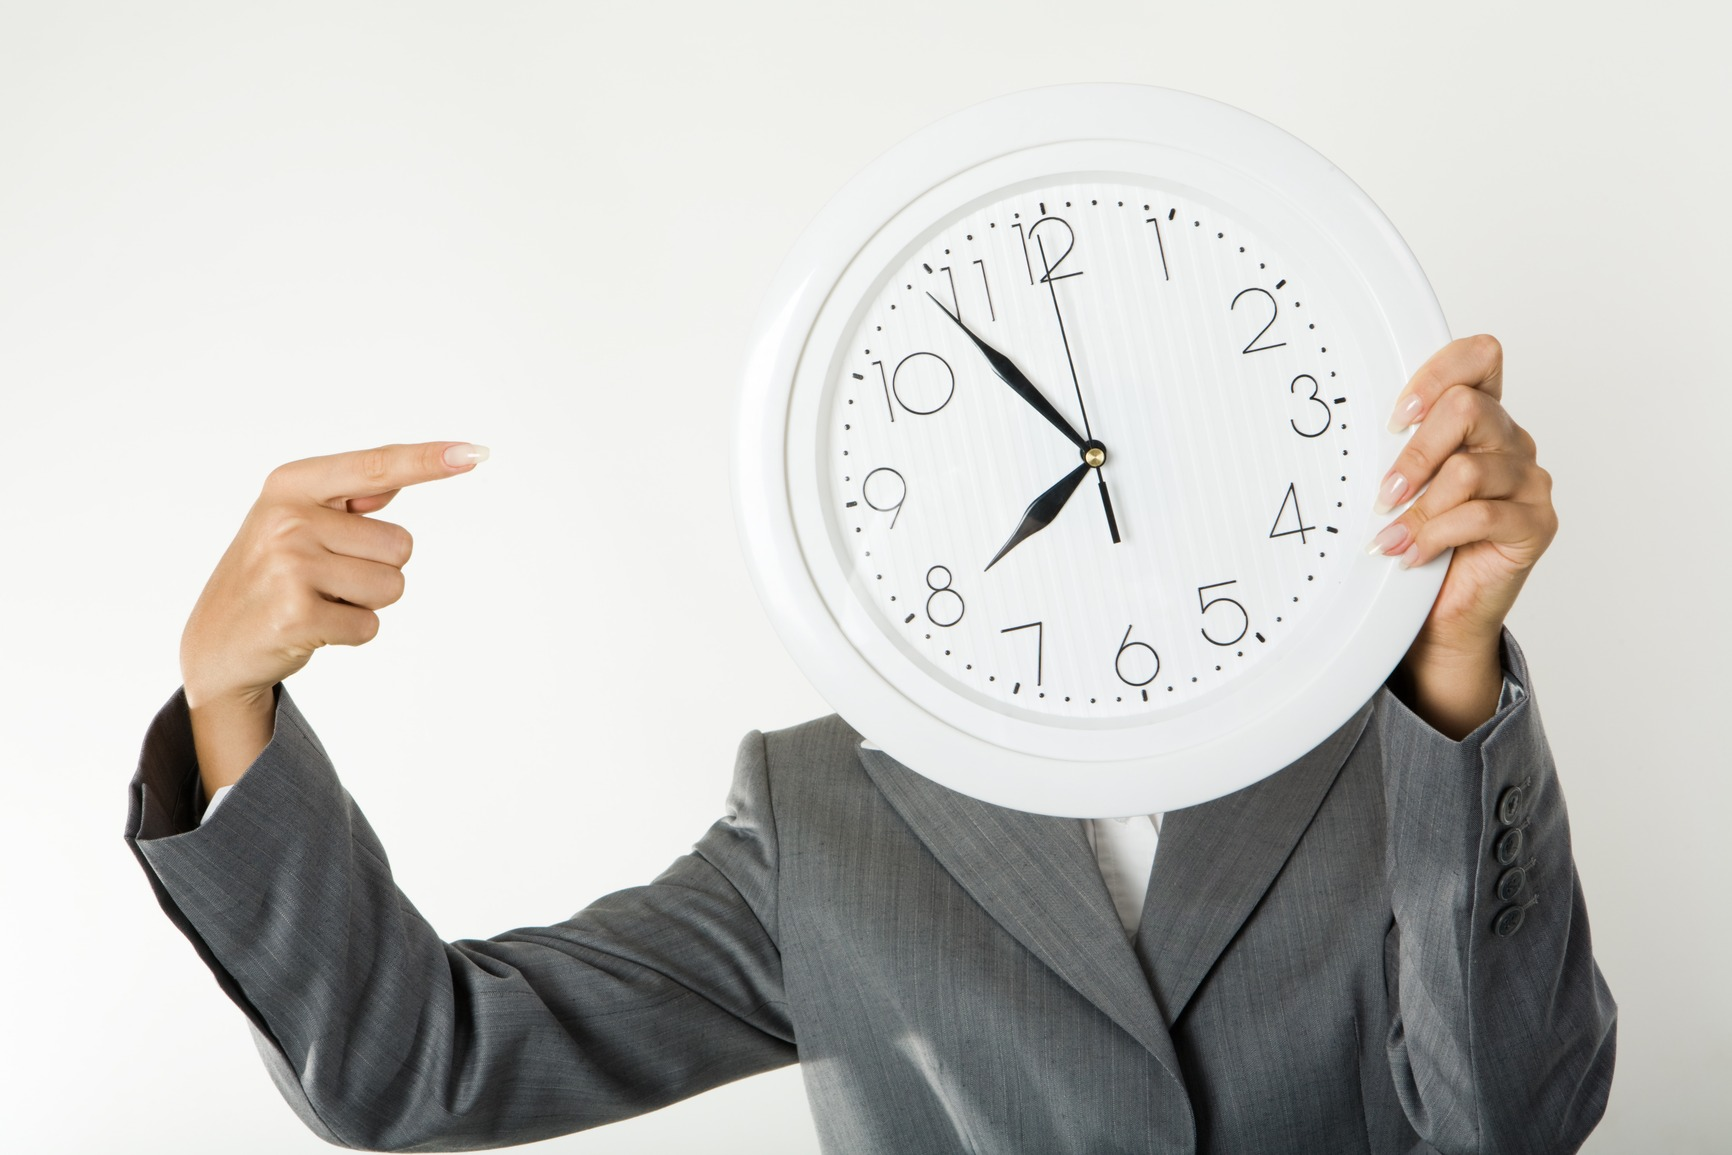 Time and Attendance Software Improves Workforce Management